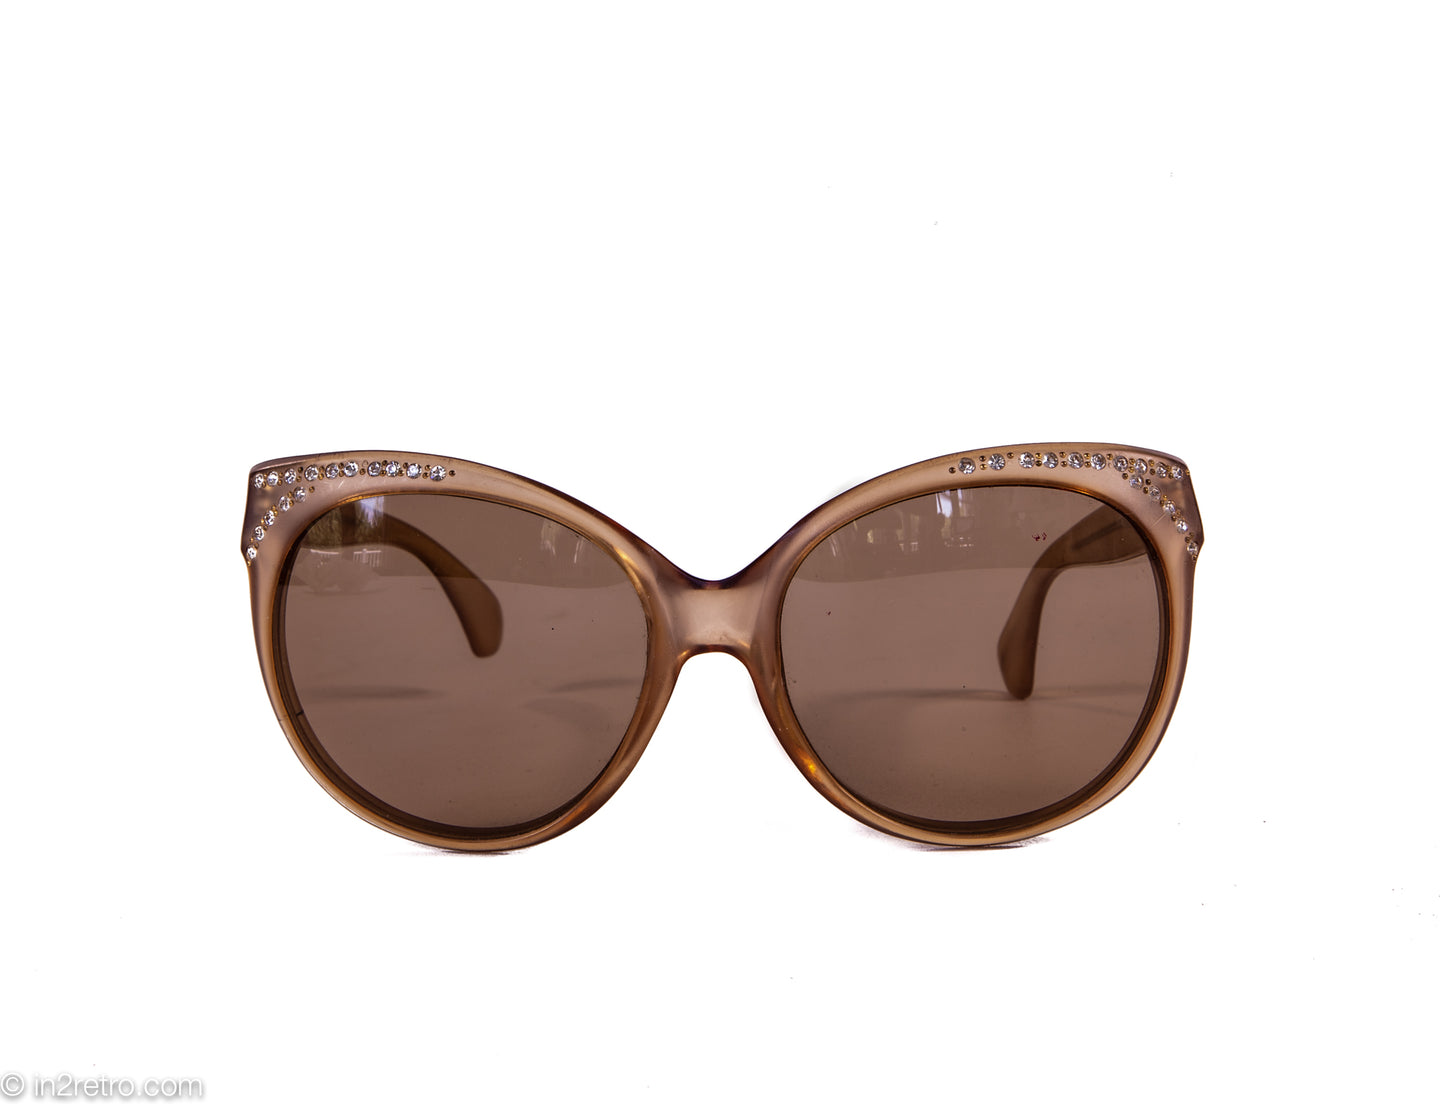 VINTAGE TAUPE/BROWN FROST OVERSIZED 1980s BLING SUNGLASSES - MADE IN FRANCE